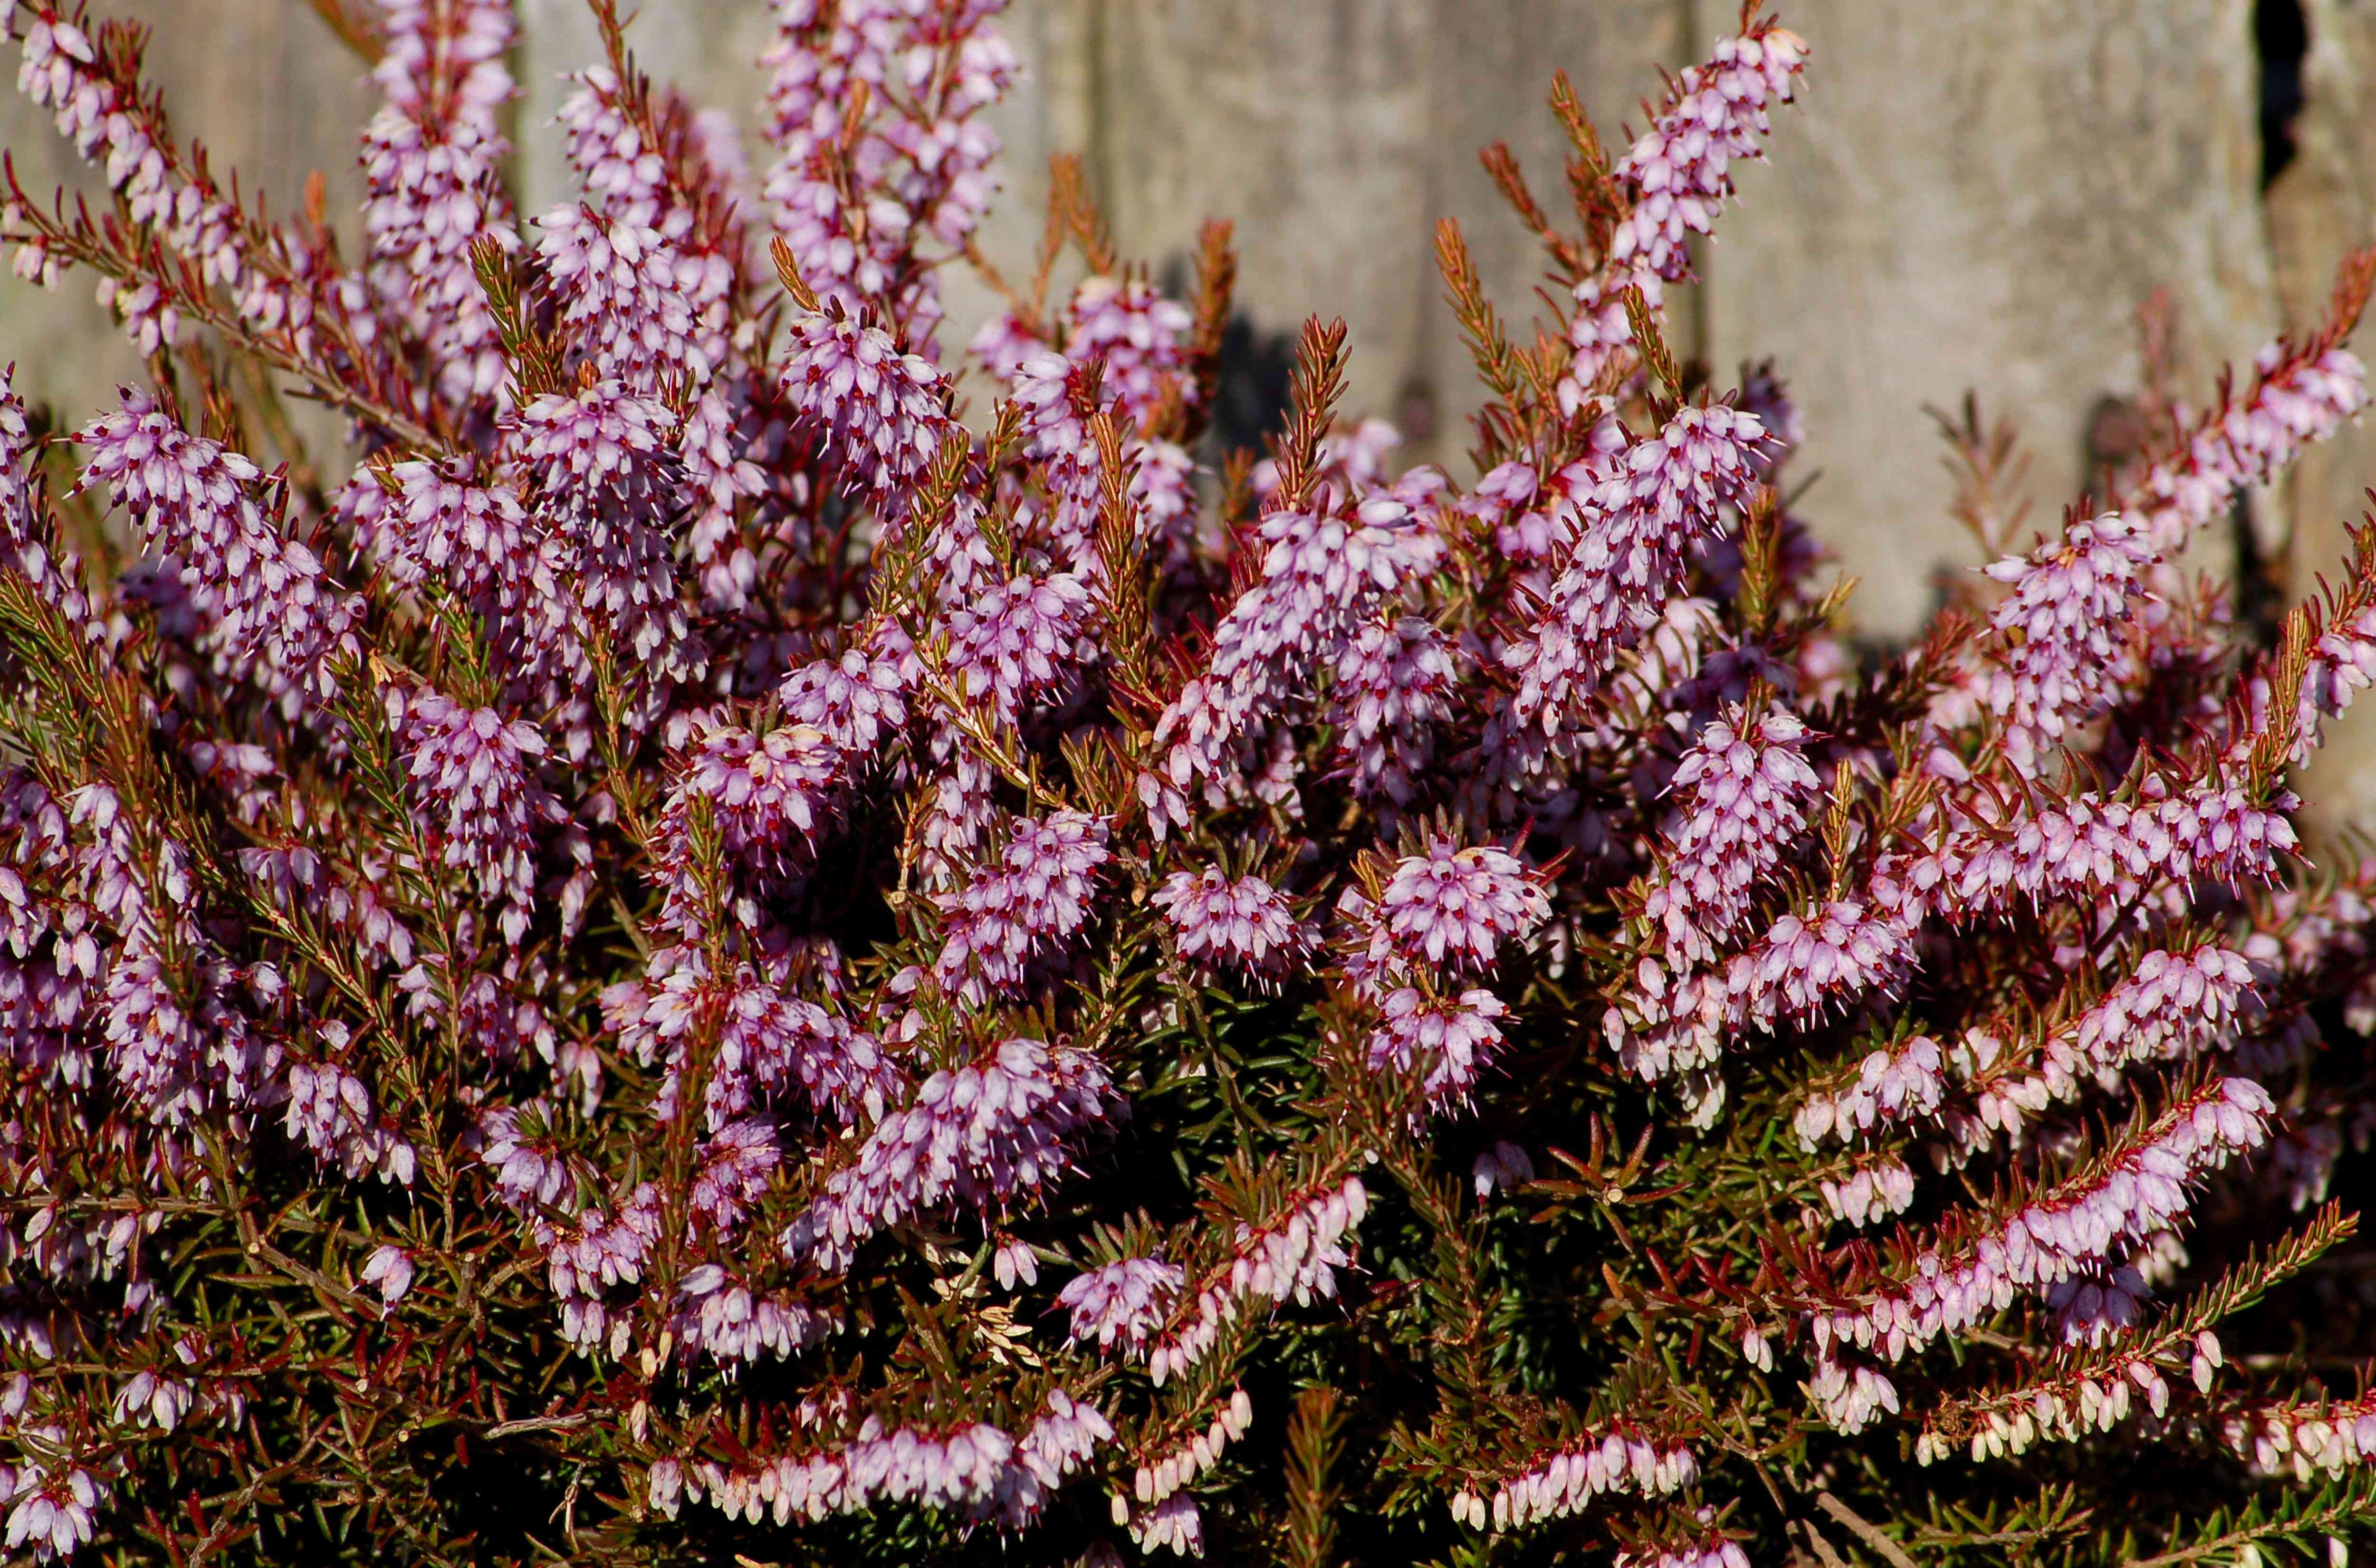 Winter heath plant with small clusters of light pink blooms on reddish-orange stems